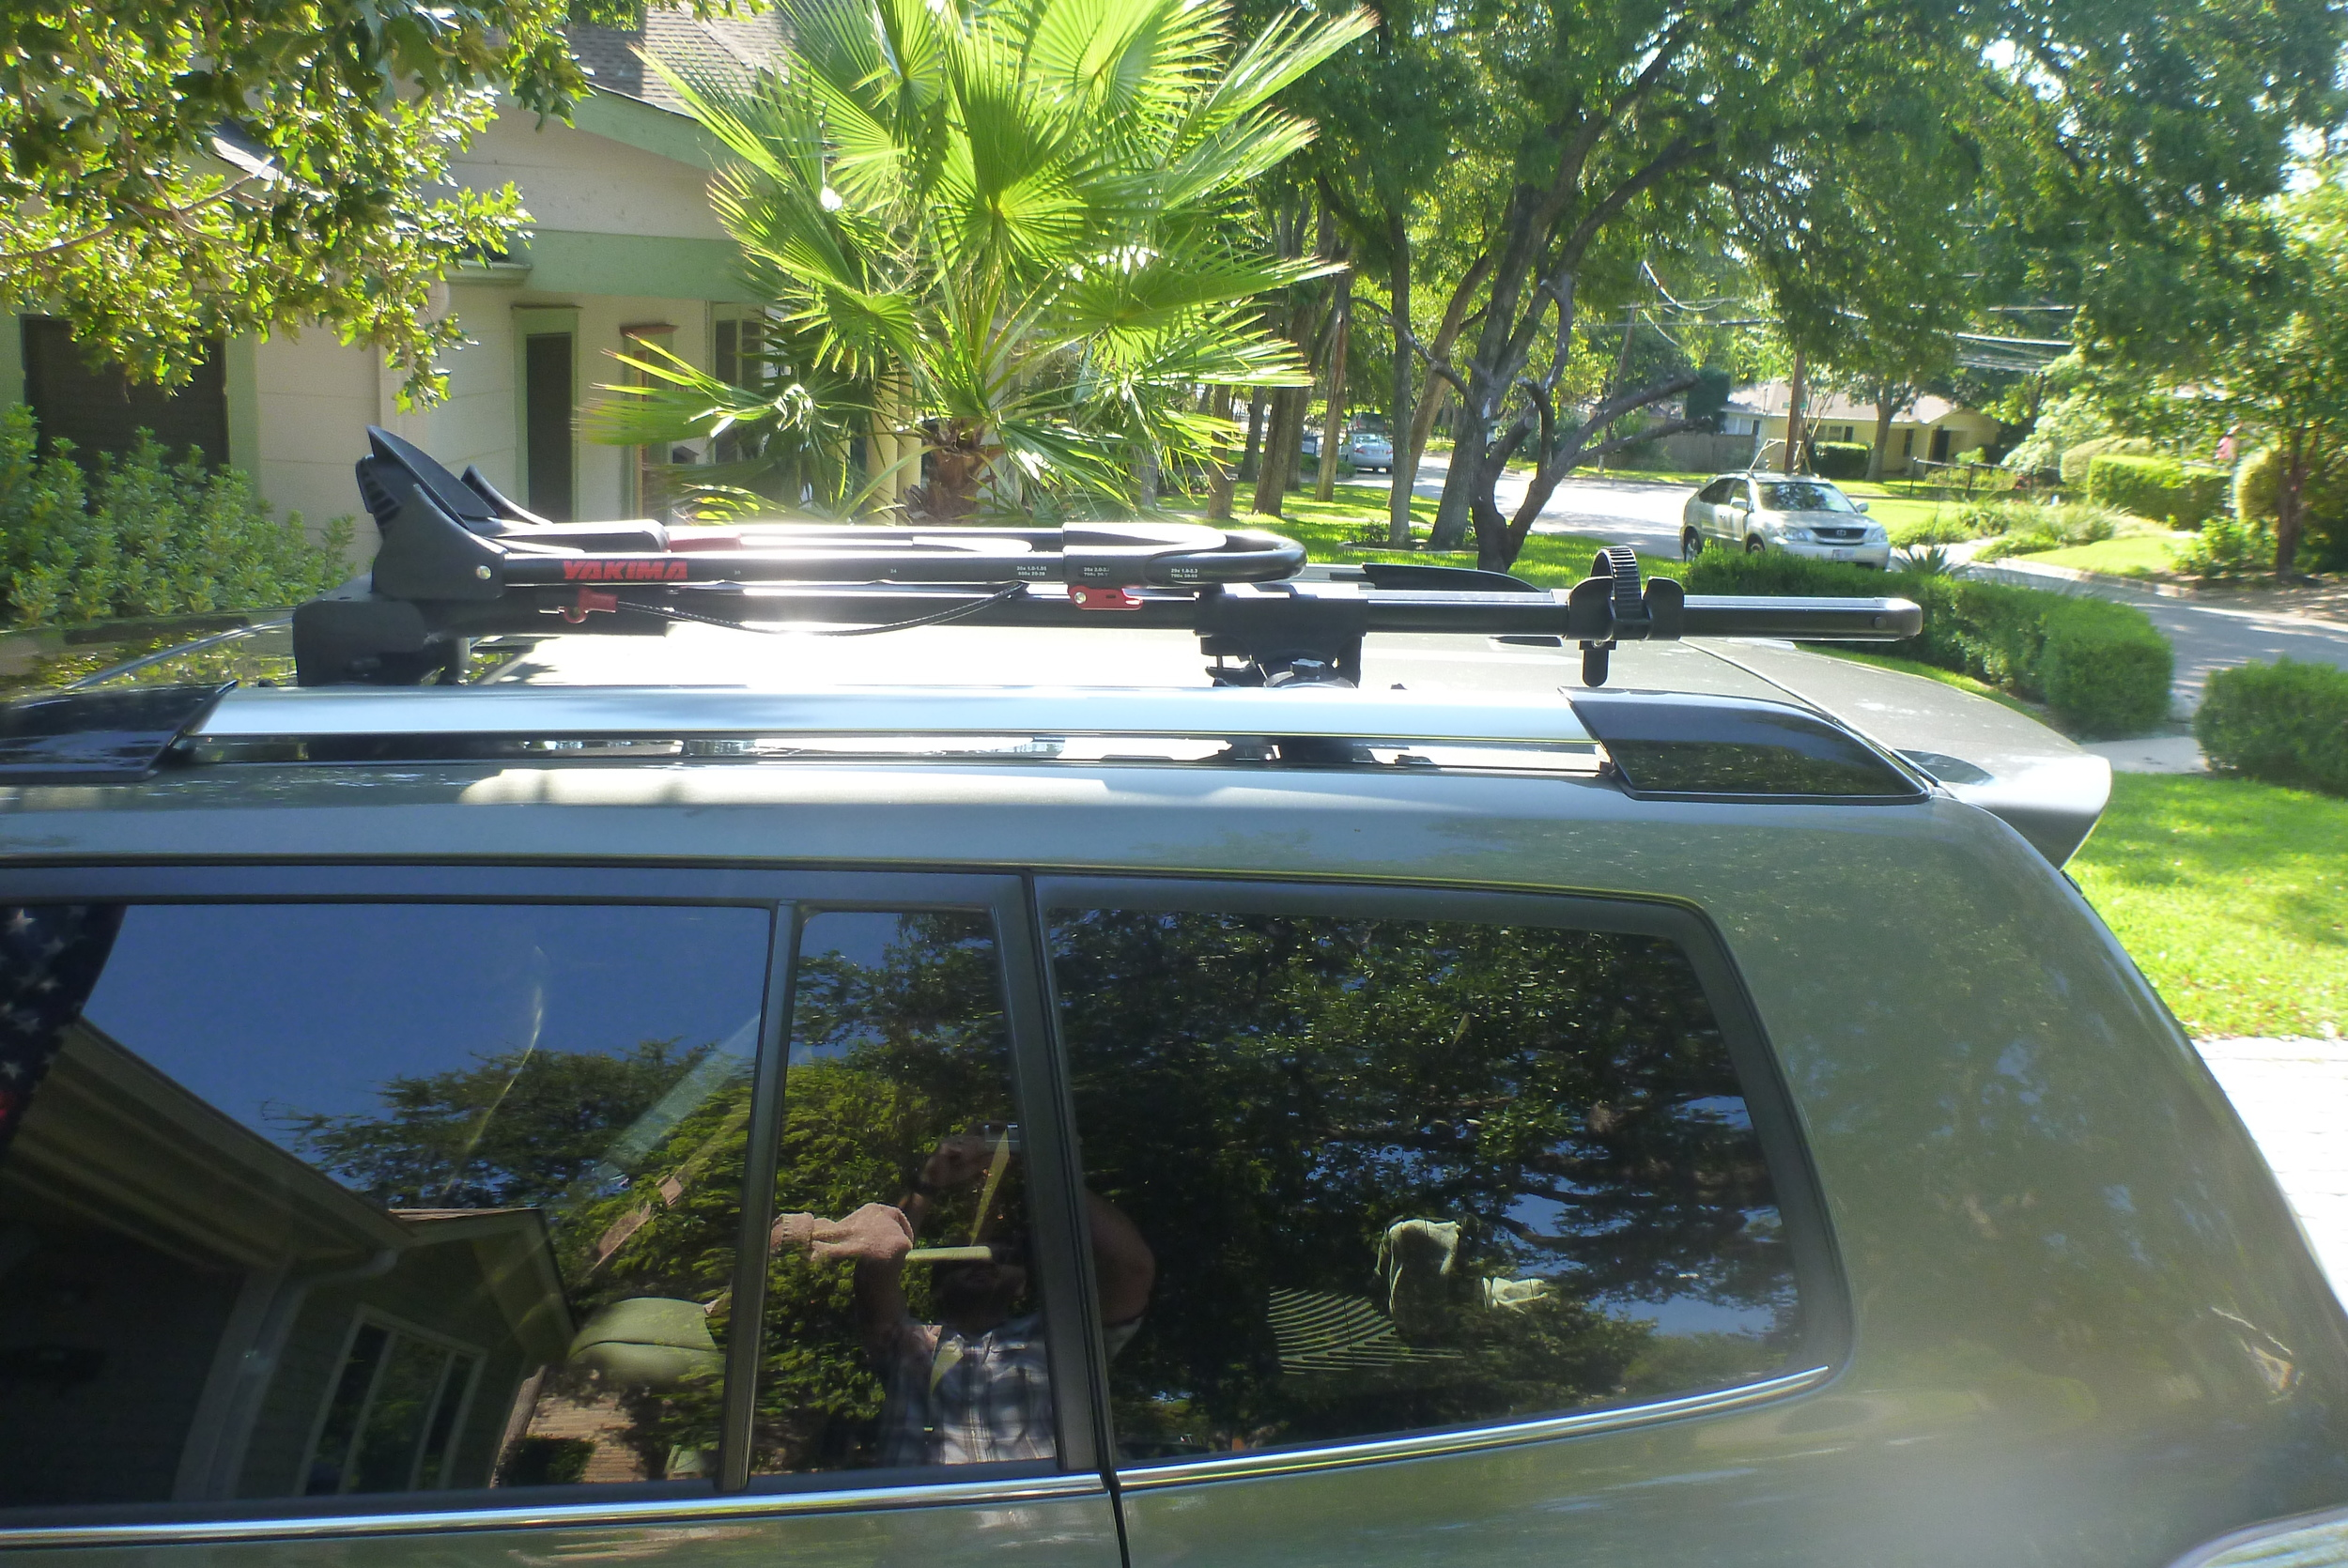 Yakima Frontloader on Toyota Highlander